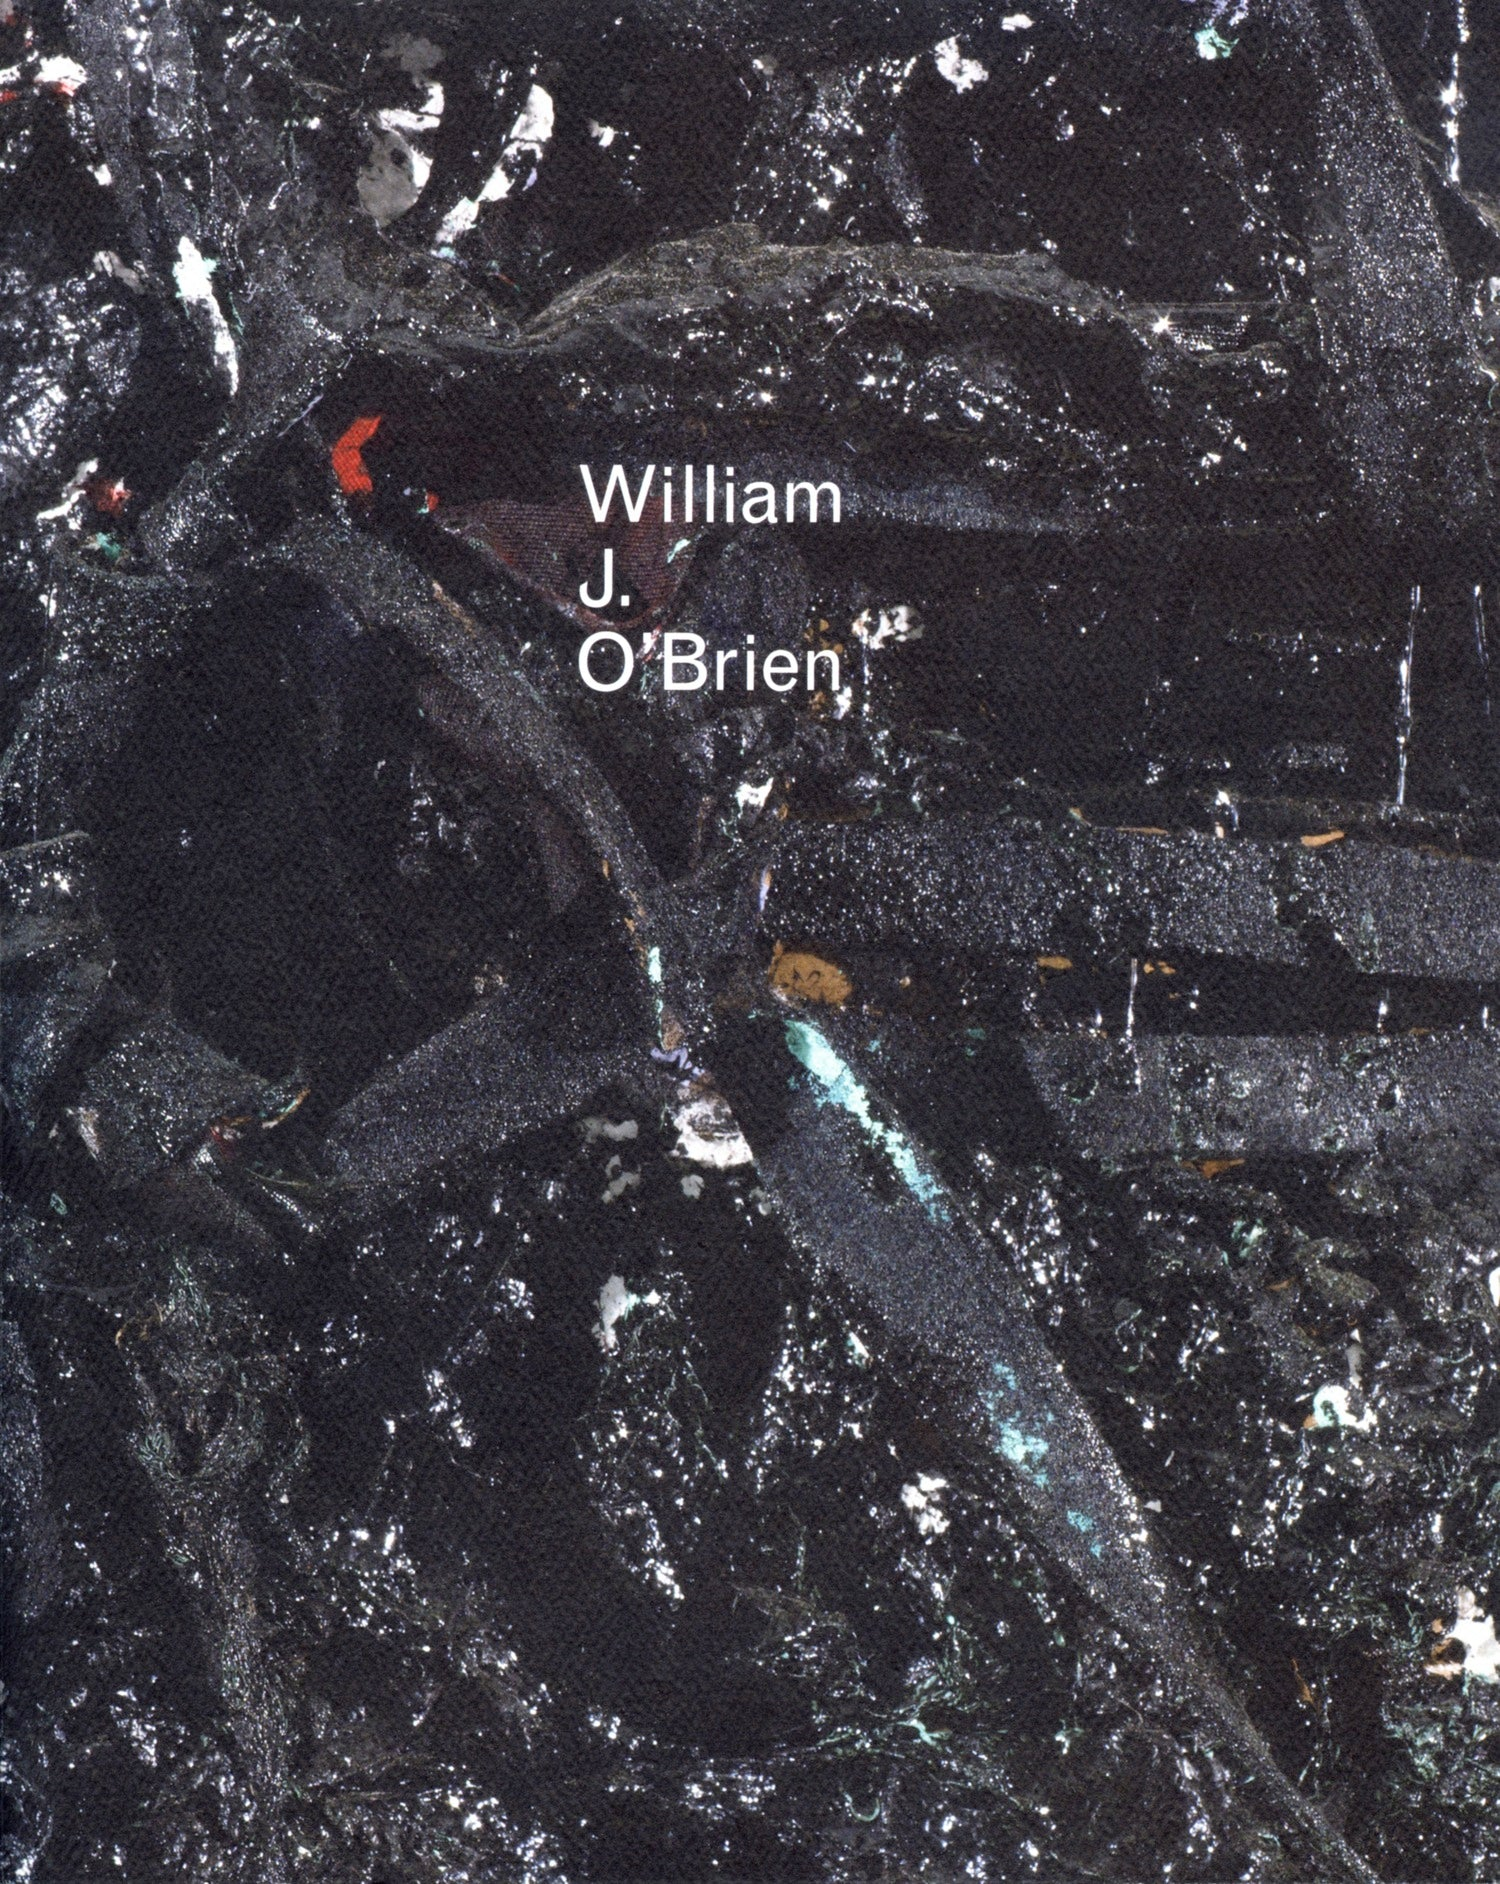 William J. O'Brien - Book at Kavi Gupta Editions